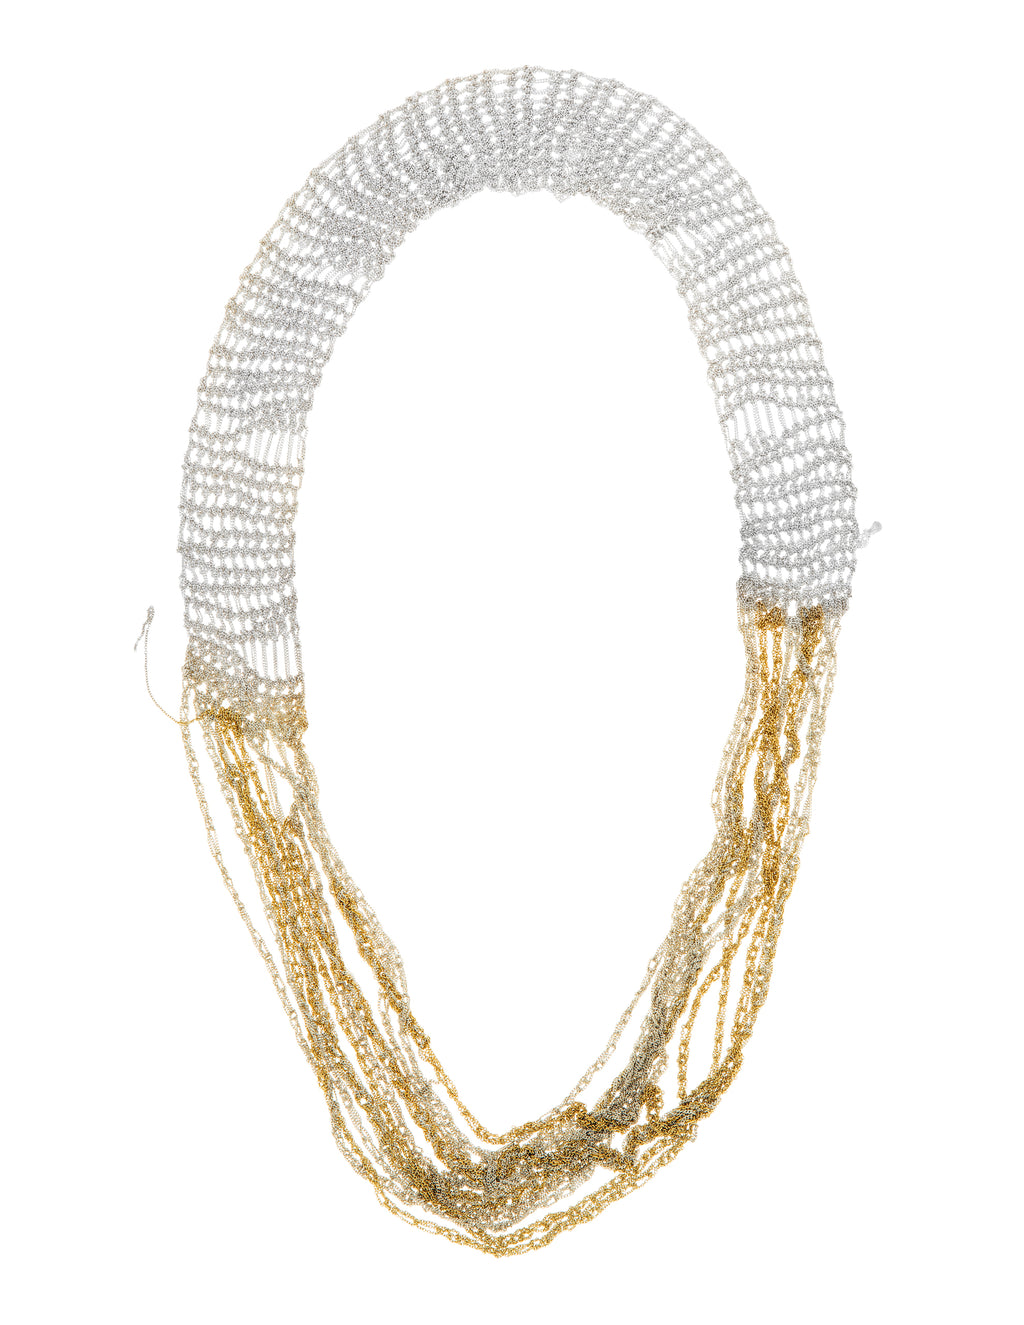 Broad Chain Necklace in Silver + Gold